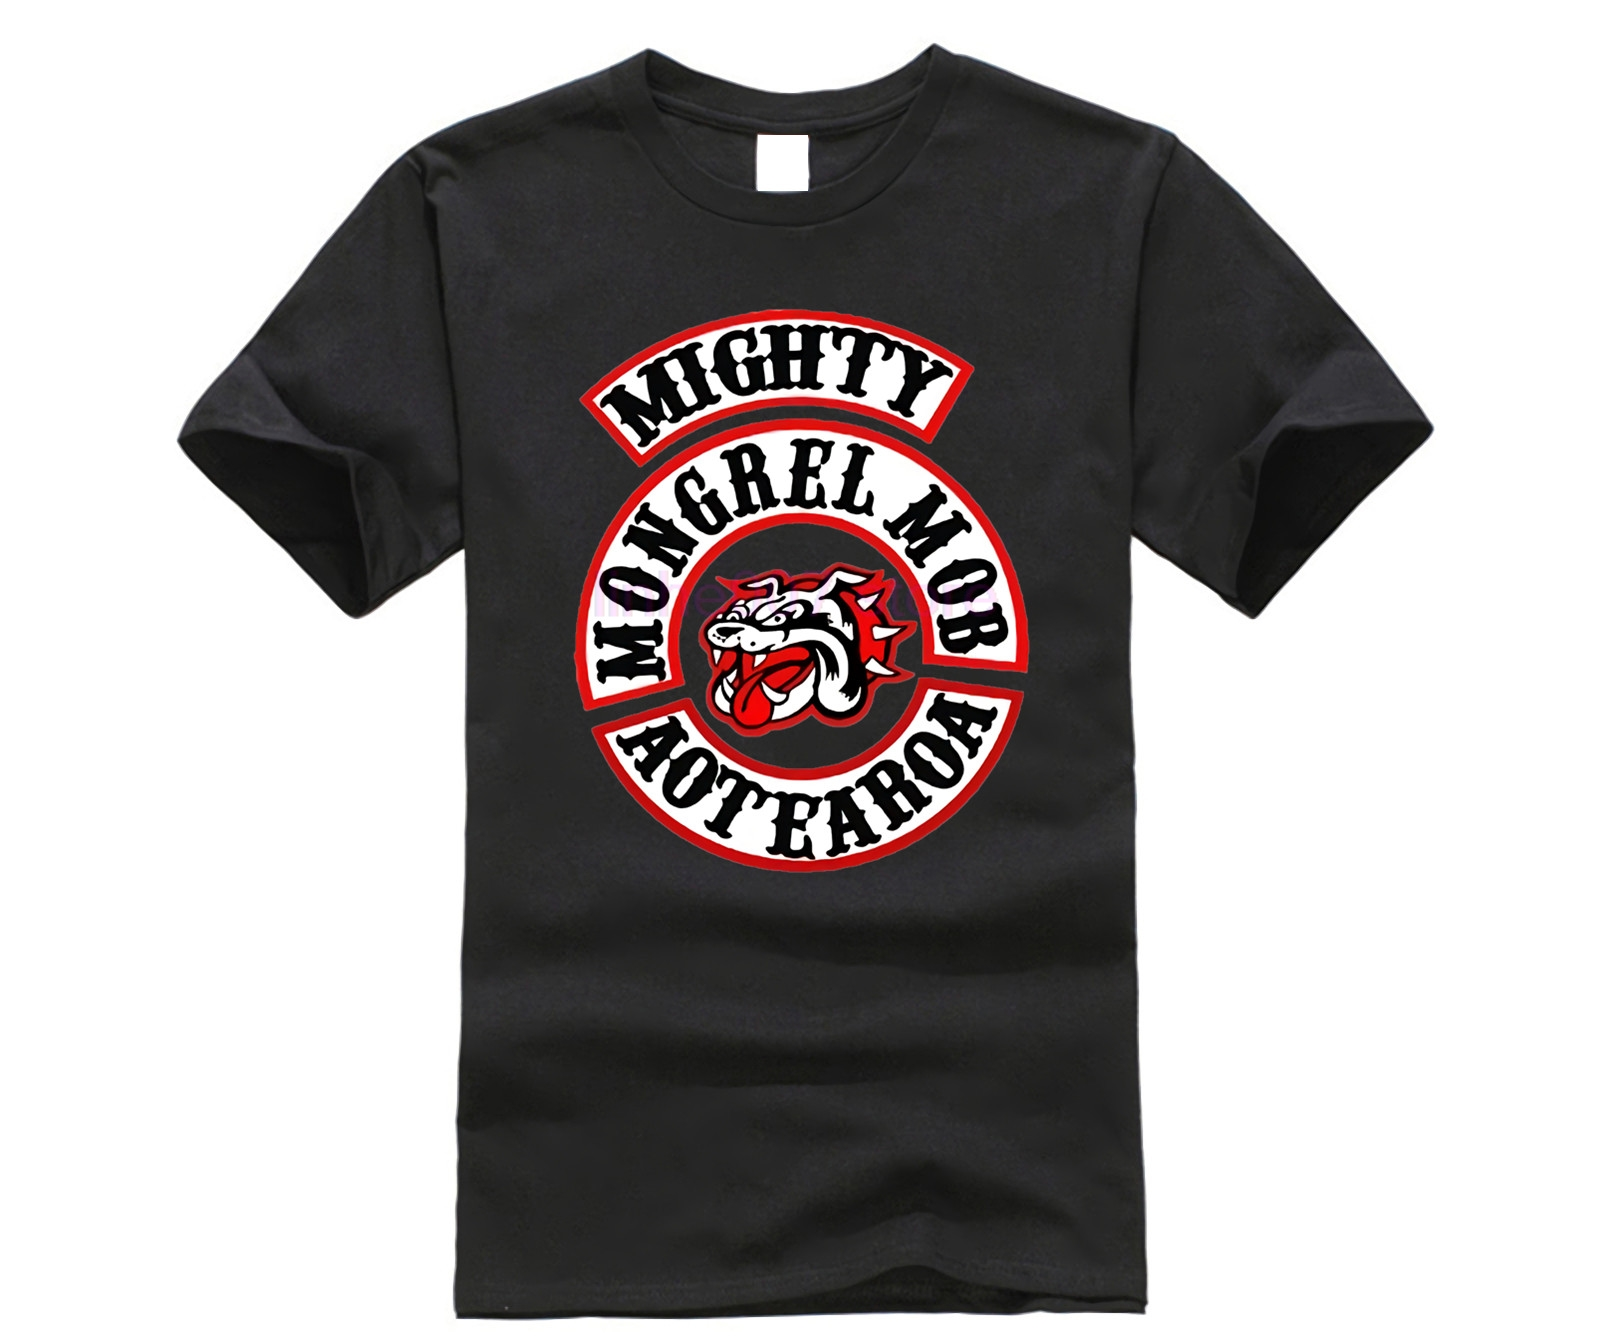 Casual <font><b>T</b></font> <font><b>Shirts</b></font> Mongrel Mob <font><b>MC</b></font> Printed Graphic Men Round Neck Tops Black image